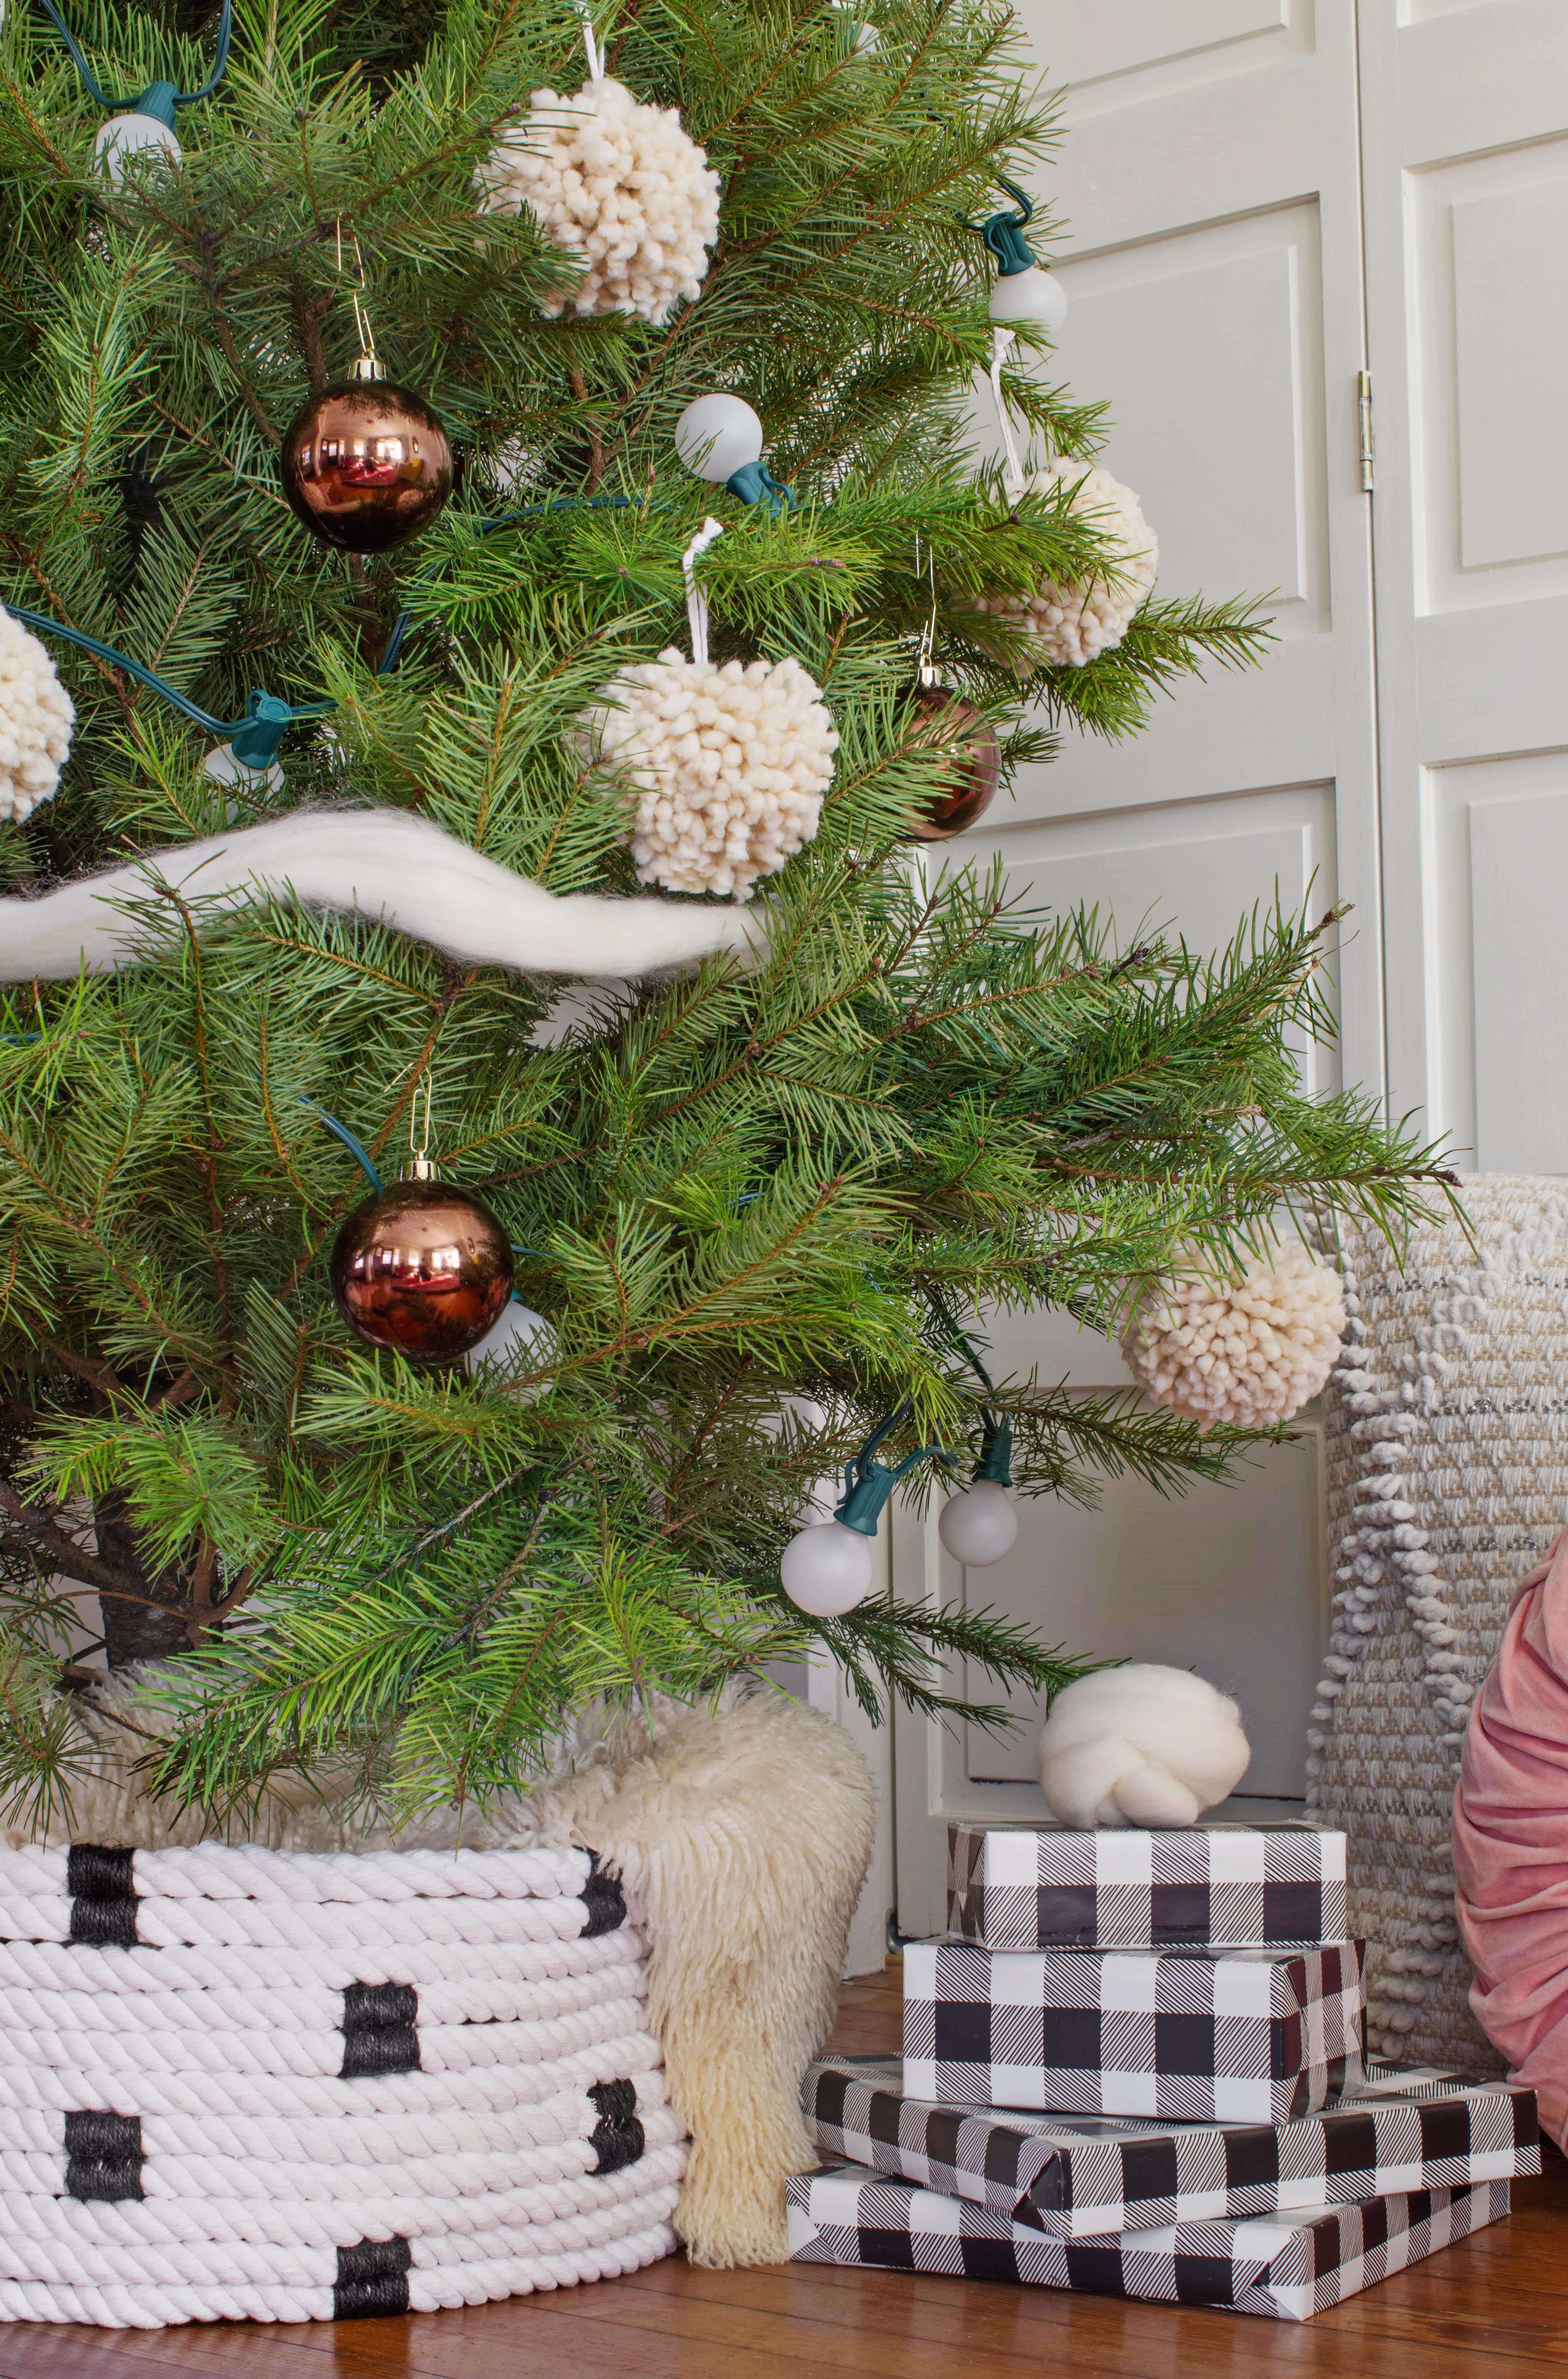 Rope Christmas Tree Collar DIY (With images) Tree collar